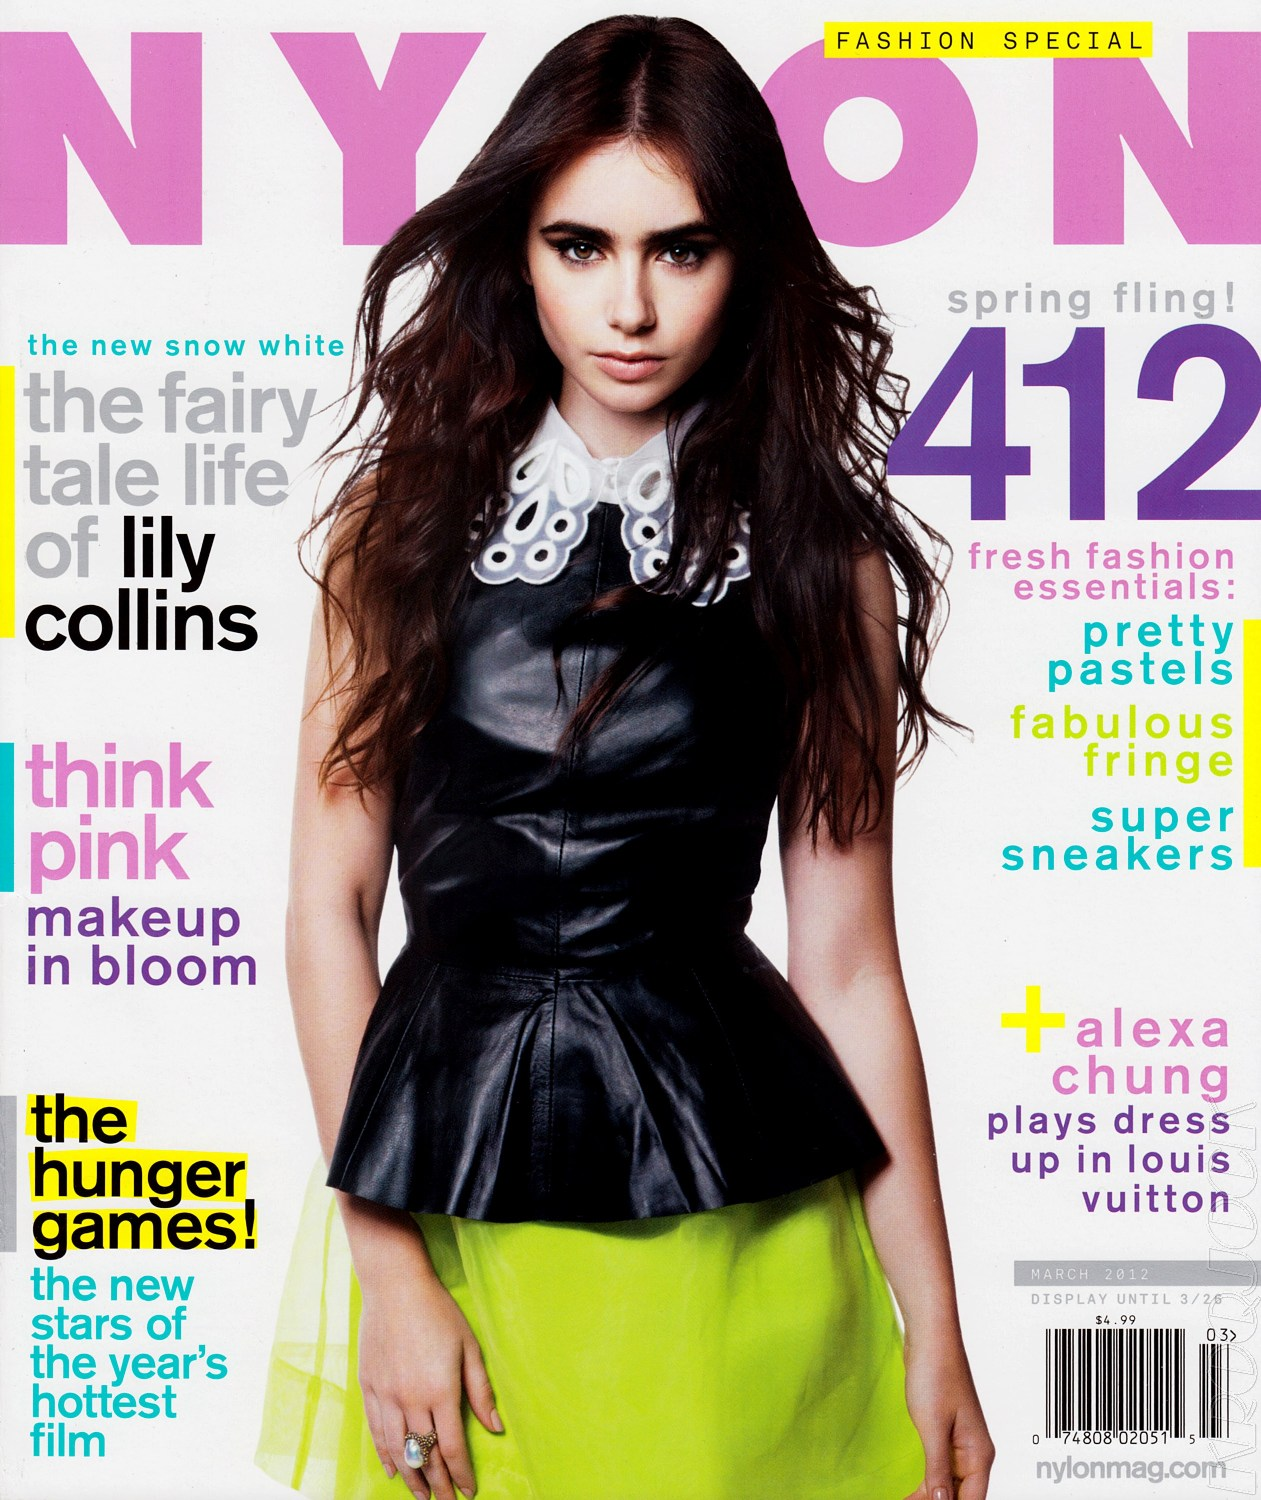 http://1.bp.blogspot.com/-EHDBLRA2oO0/T2JyS7b1IsI/AAAAAAAAByM/bCN76_EGAO4/s1600/Lily-Collins-on-NYLON-March-2012-Cover.jpg